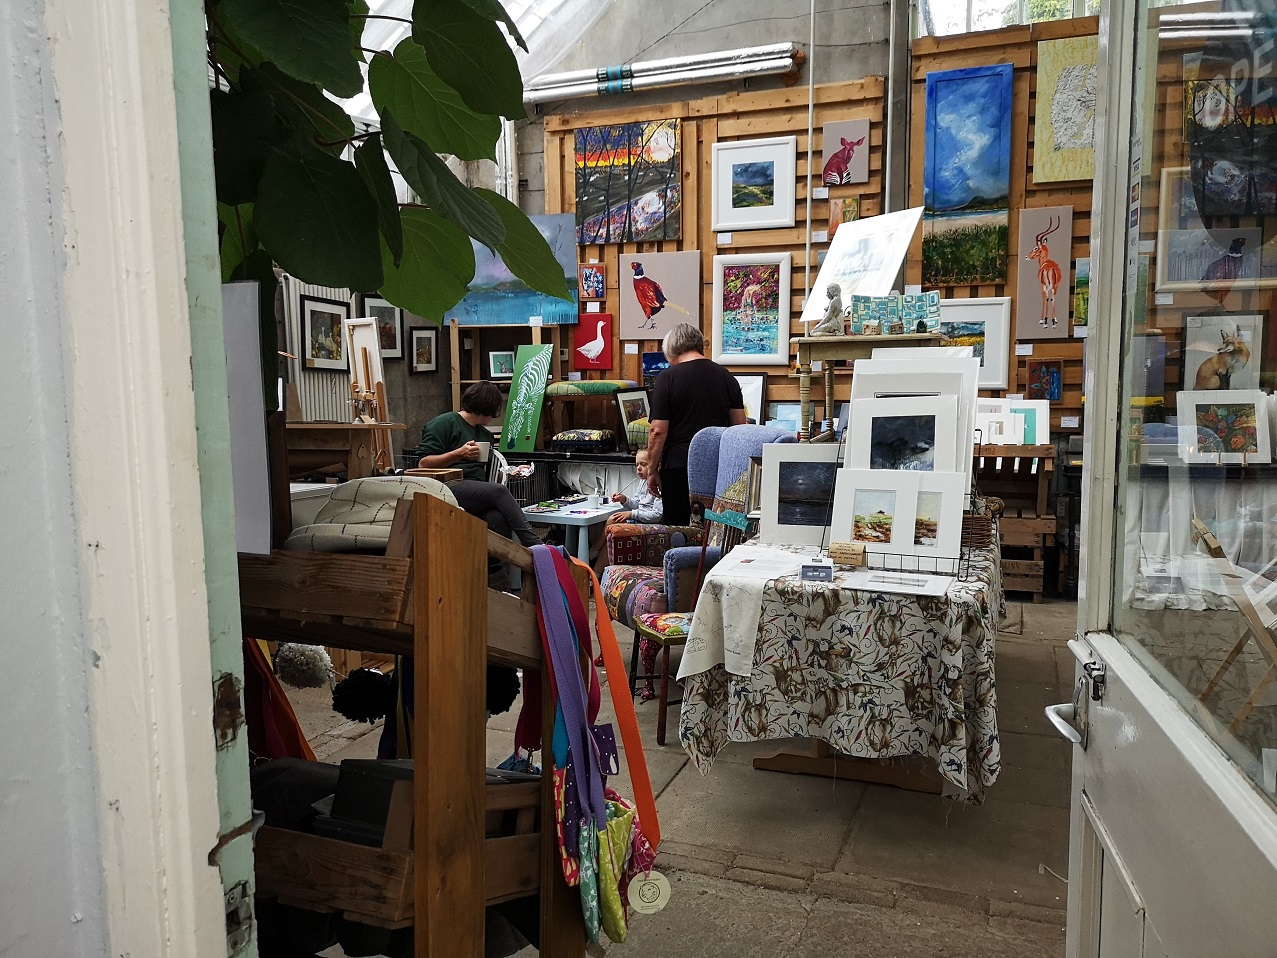 Paintings for sale in the gallery